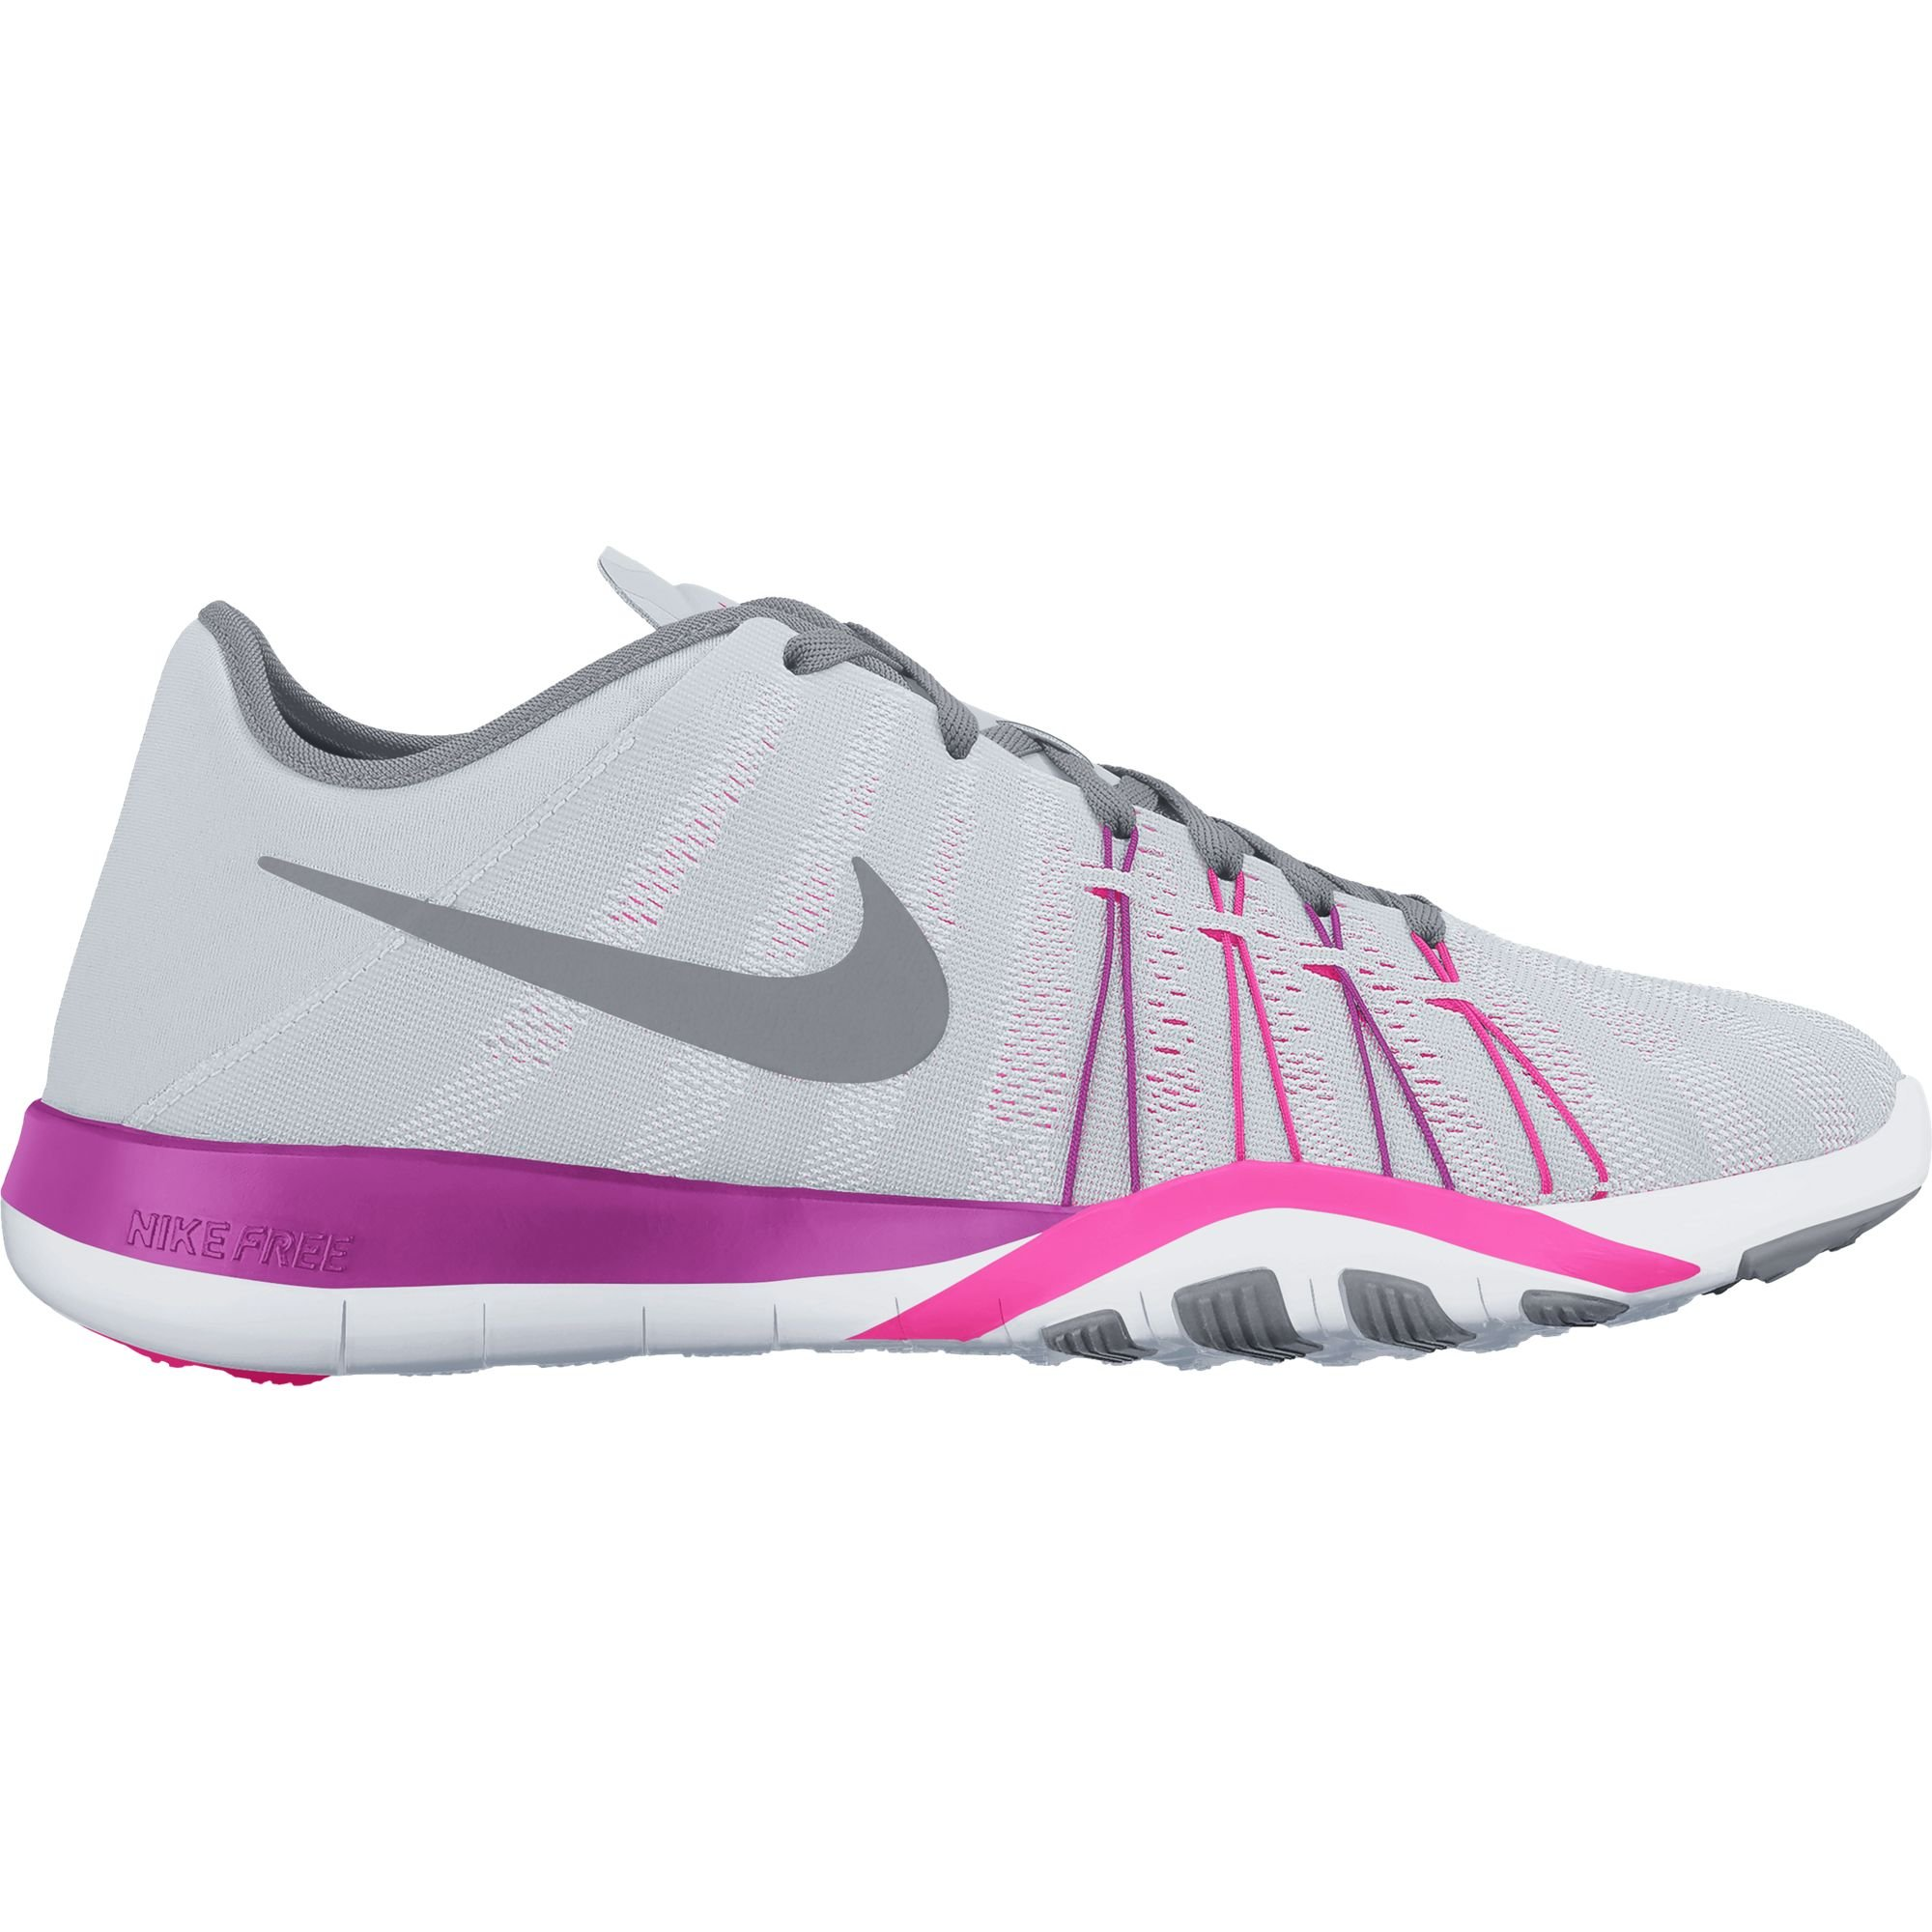 Nike Women's Free TR 6 Training Shoe Pure Platinum/Stealth/Pink Blast Size 11 M US